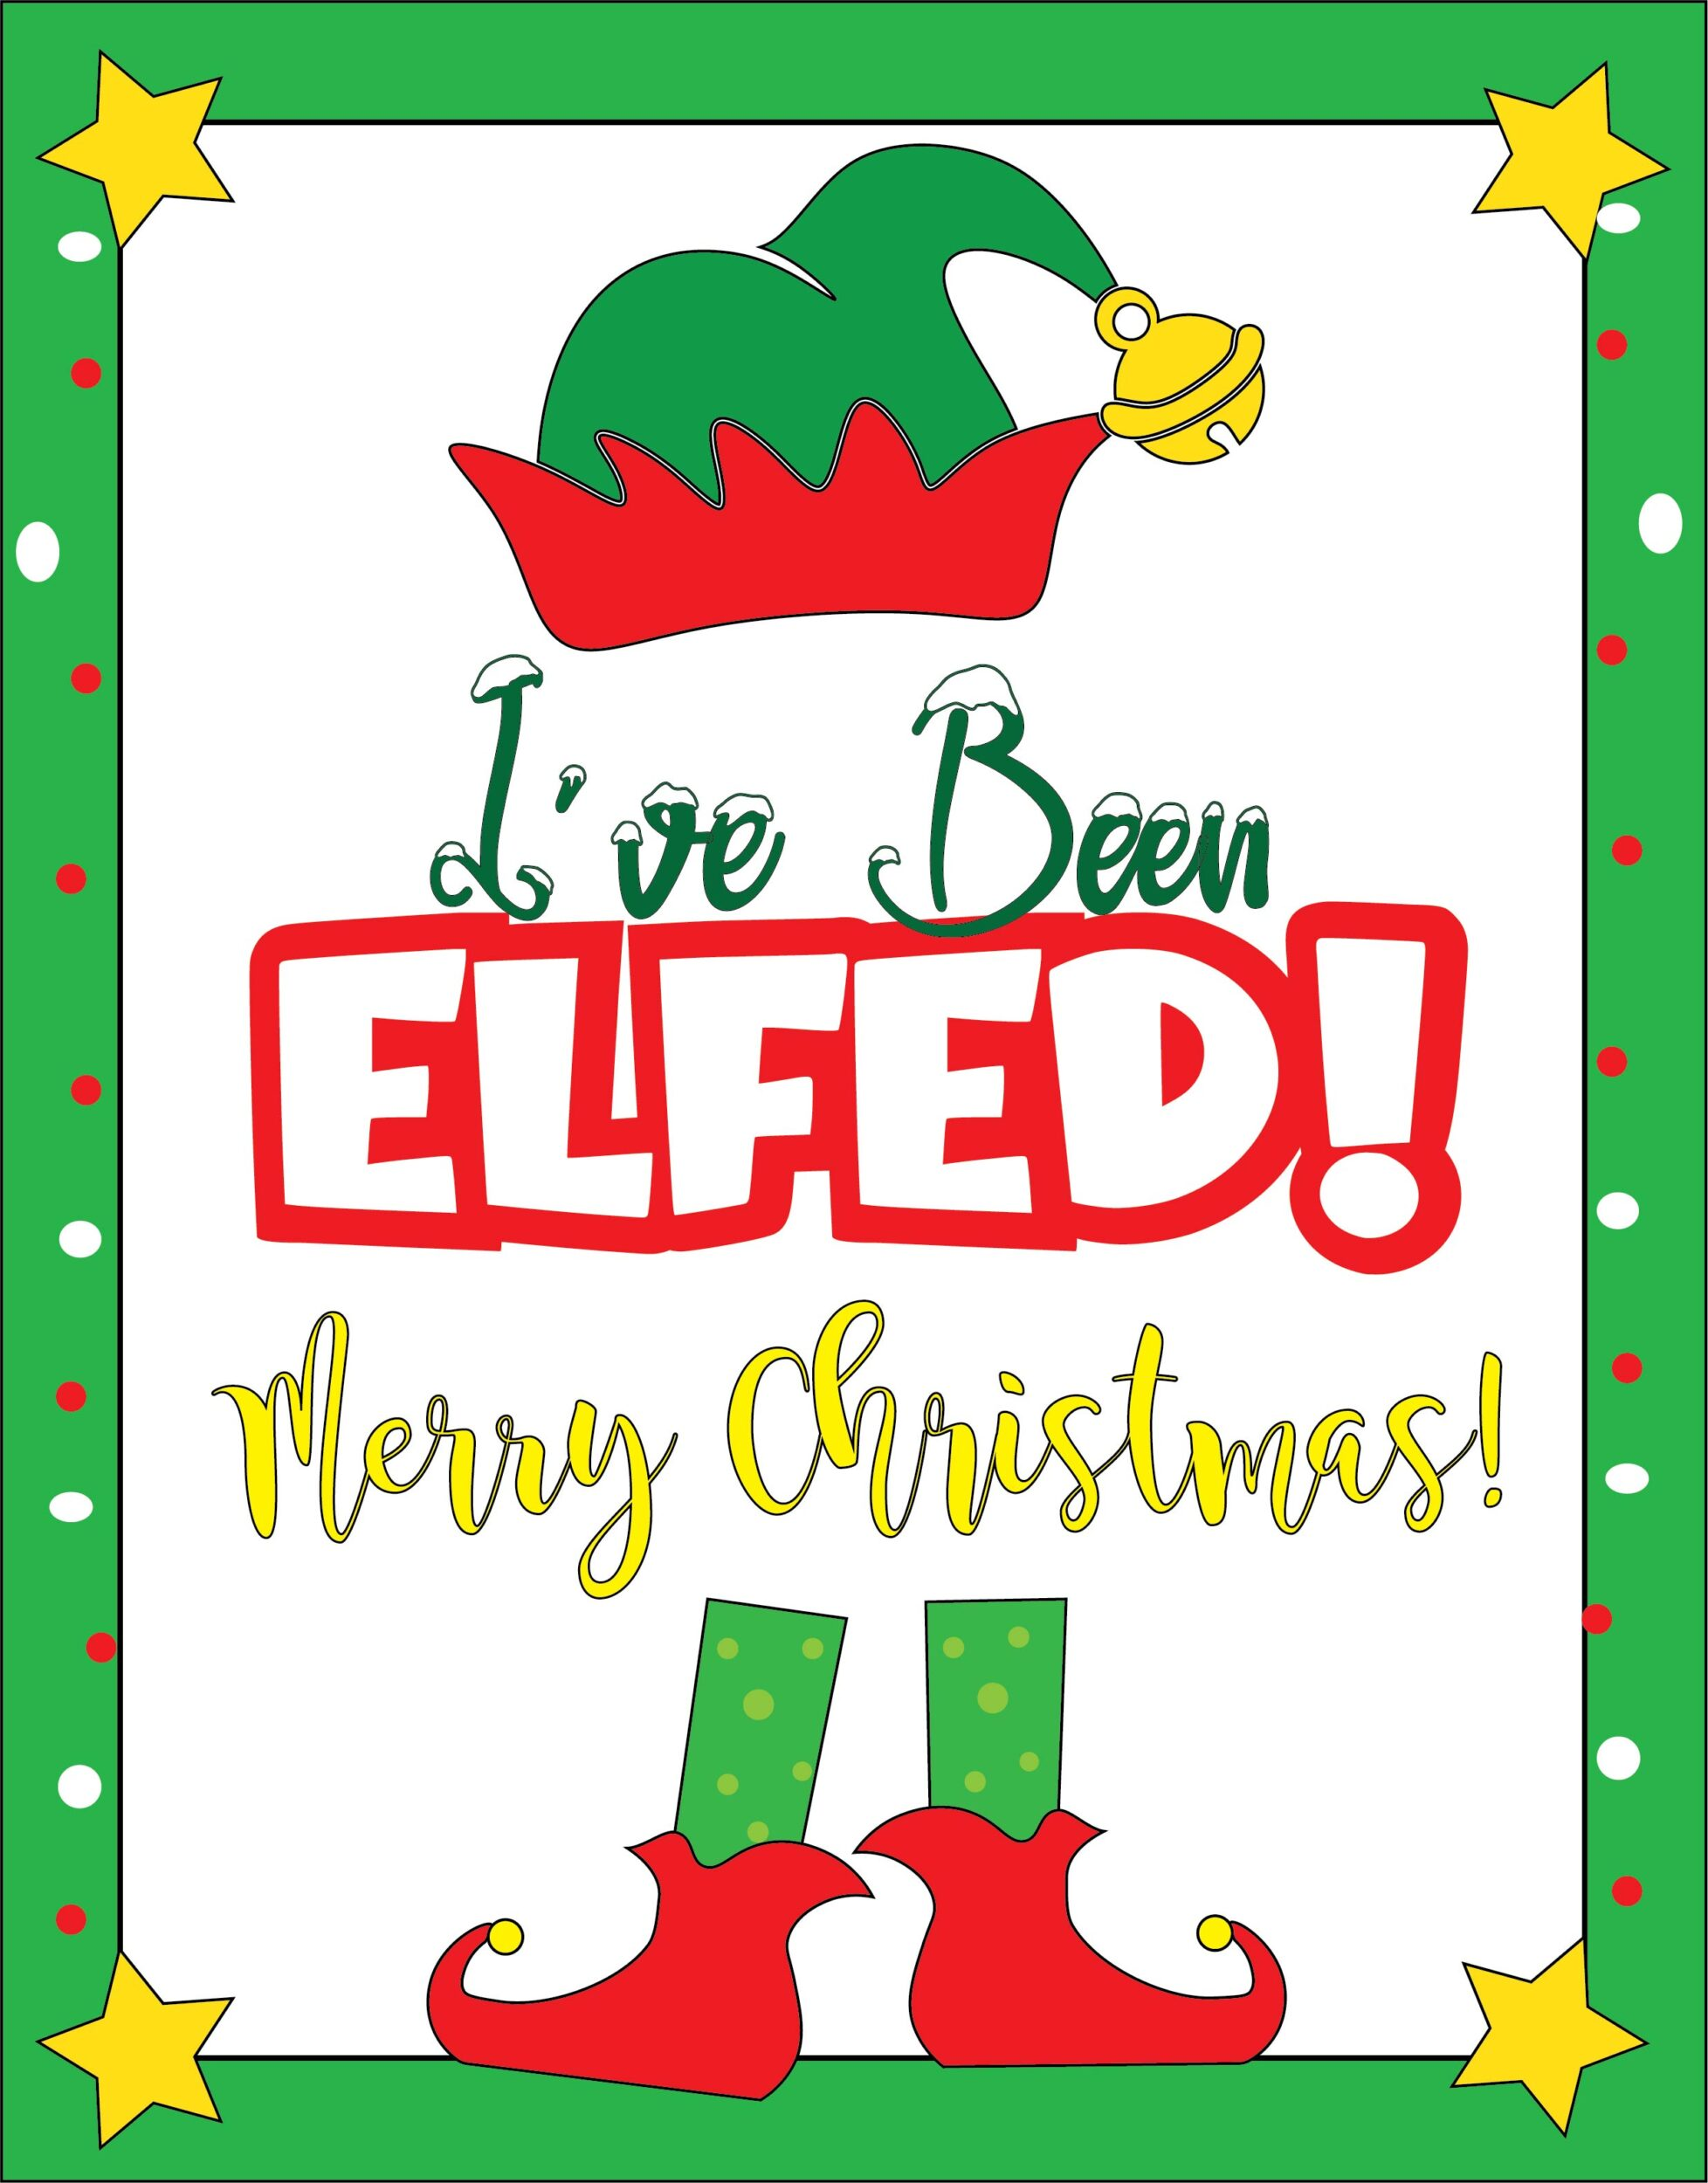 ive been elfed printable